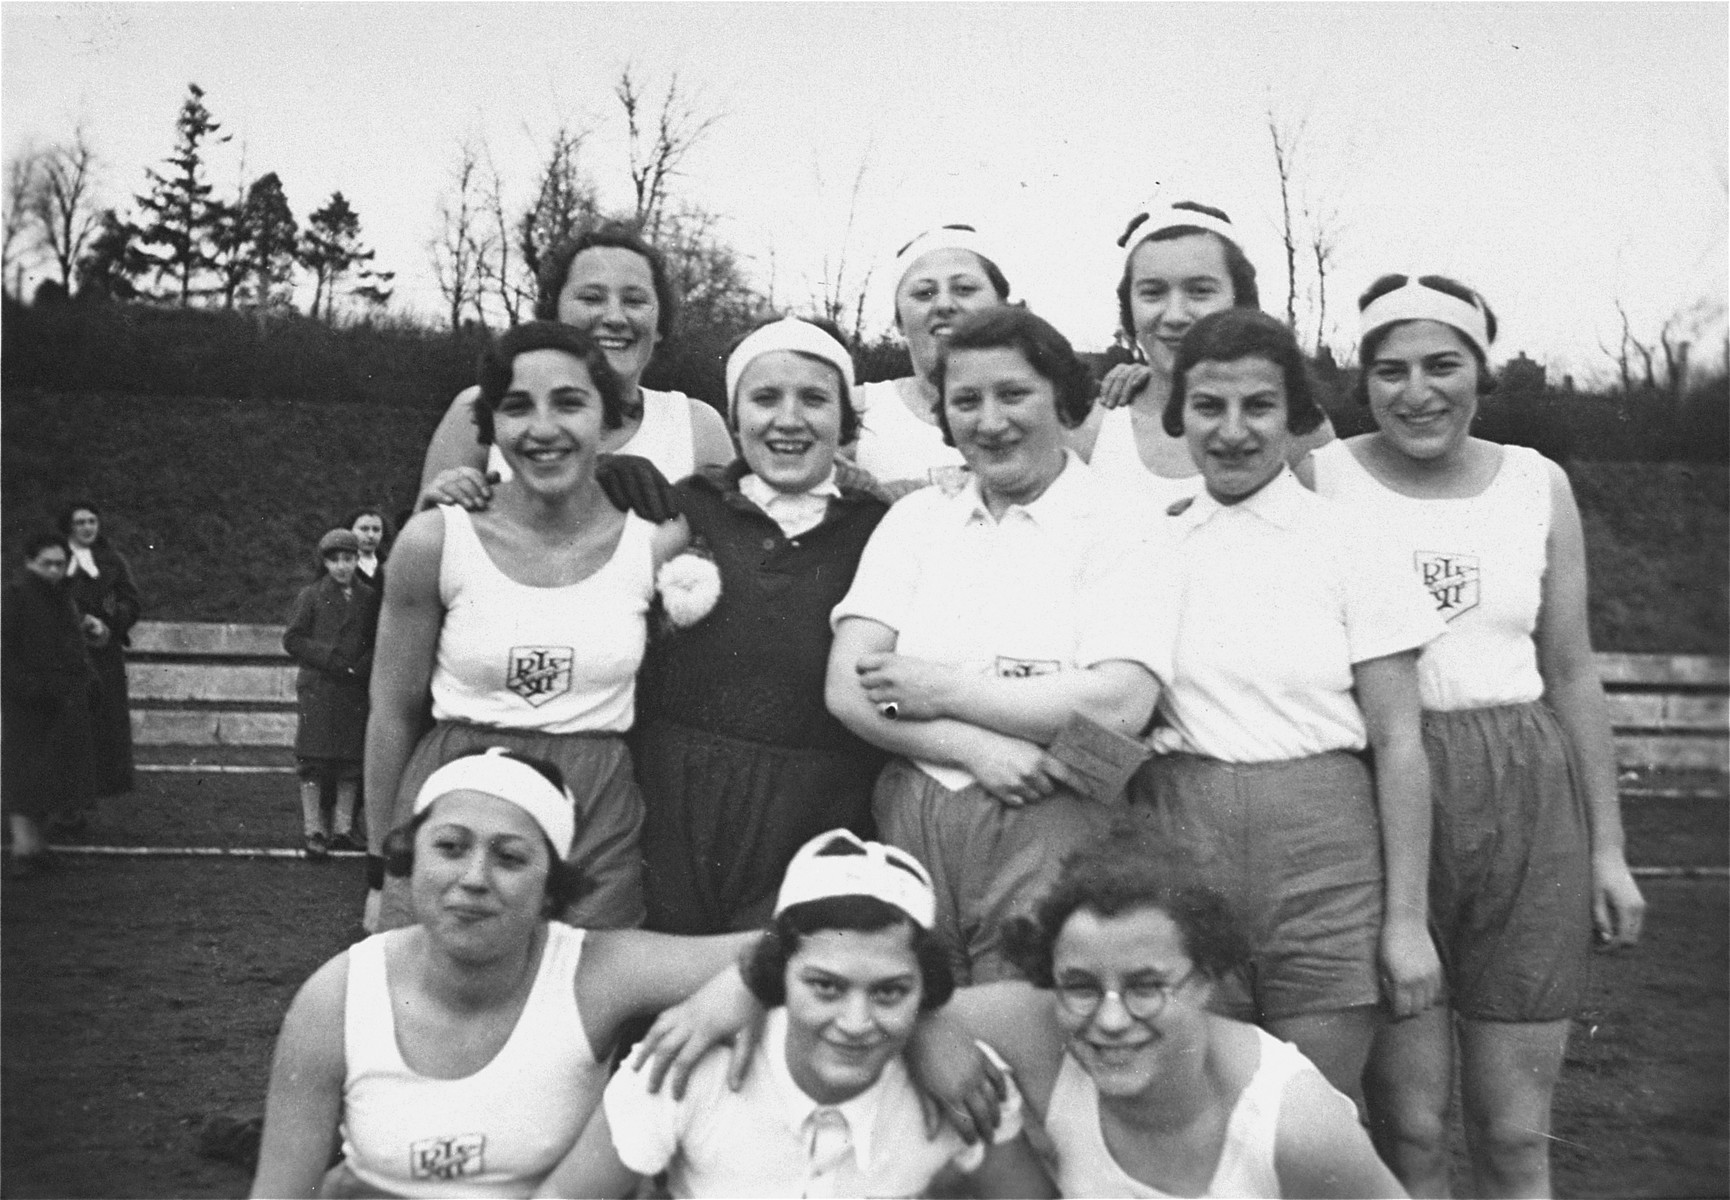 Group portrait of members of the women's handball team sponsored by the Reichsbund juedischer Frontsoldaten.    The donor, Ilse Dahl, is pictured in the back row, third from the left.  Pictured in the center row, second from the right is Grete Herz. Grete was born September 21, 1909 in Erkelenz, and married Max Kaufmann.  She died June 21, 2003 in San Francisco.